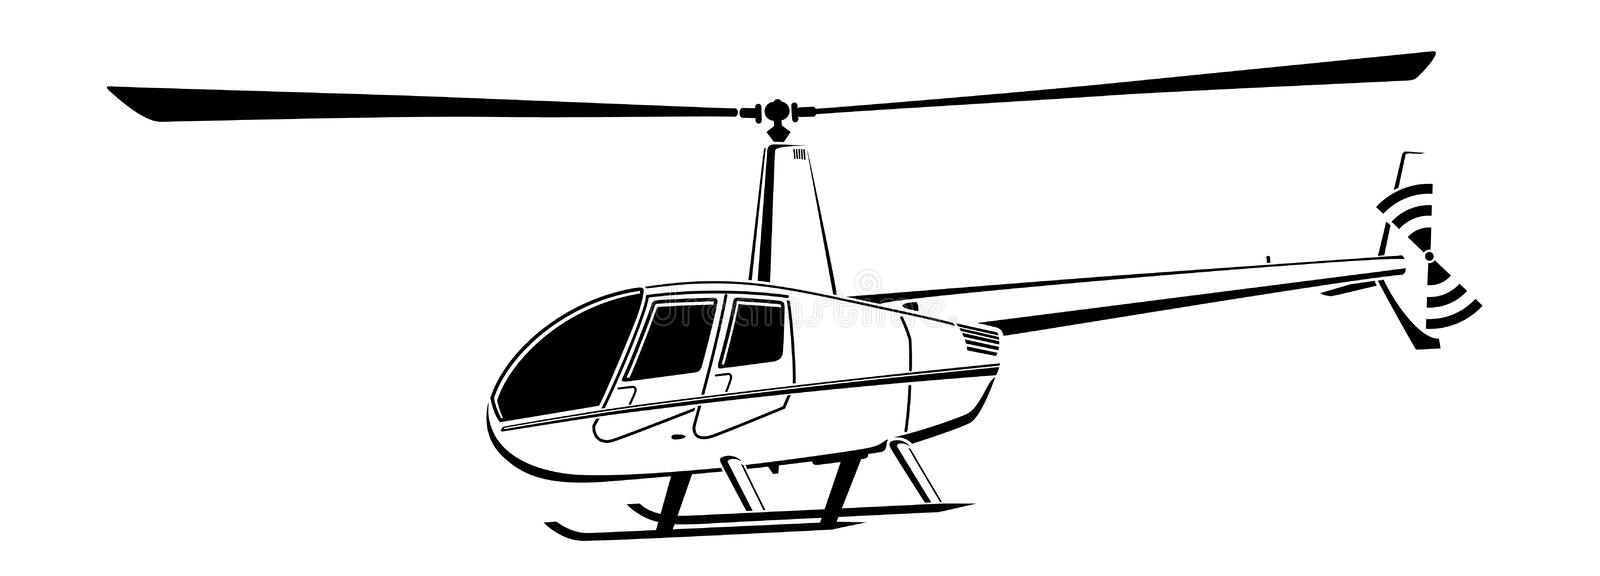 helicopter abstract lines vector logo vector illustration stock